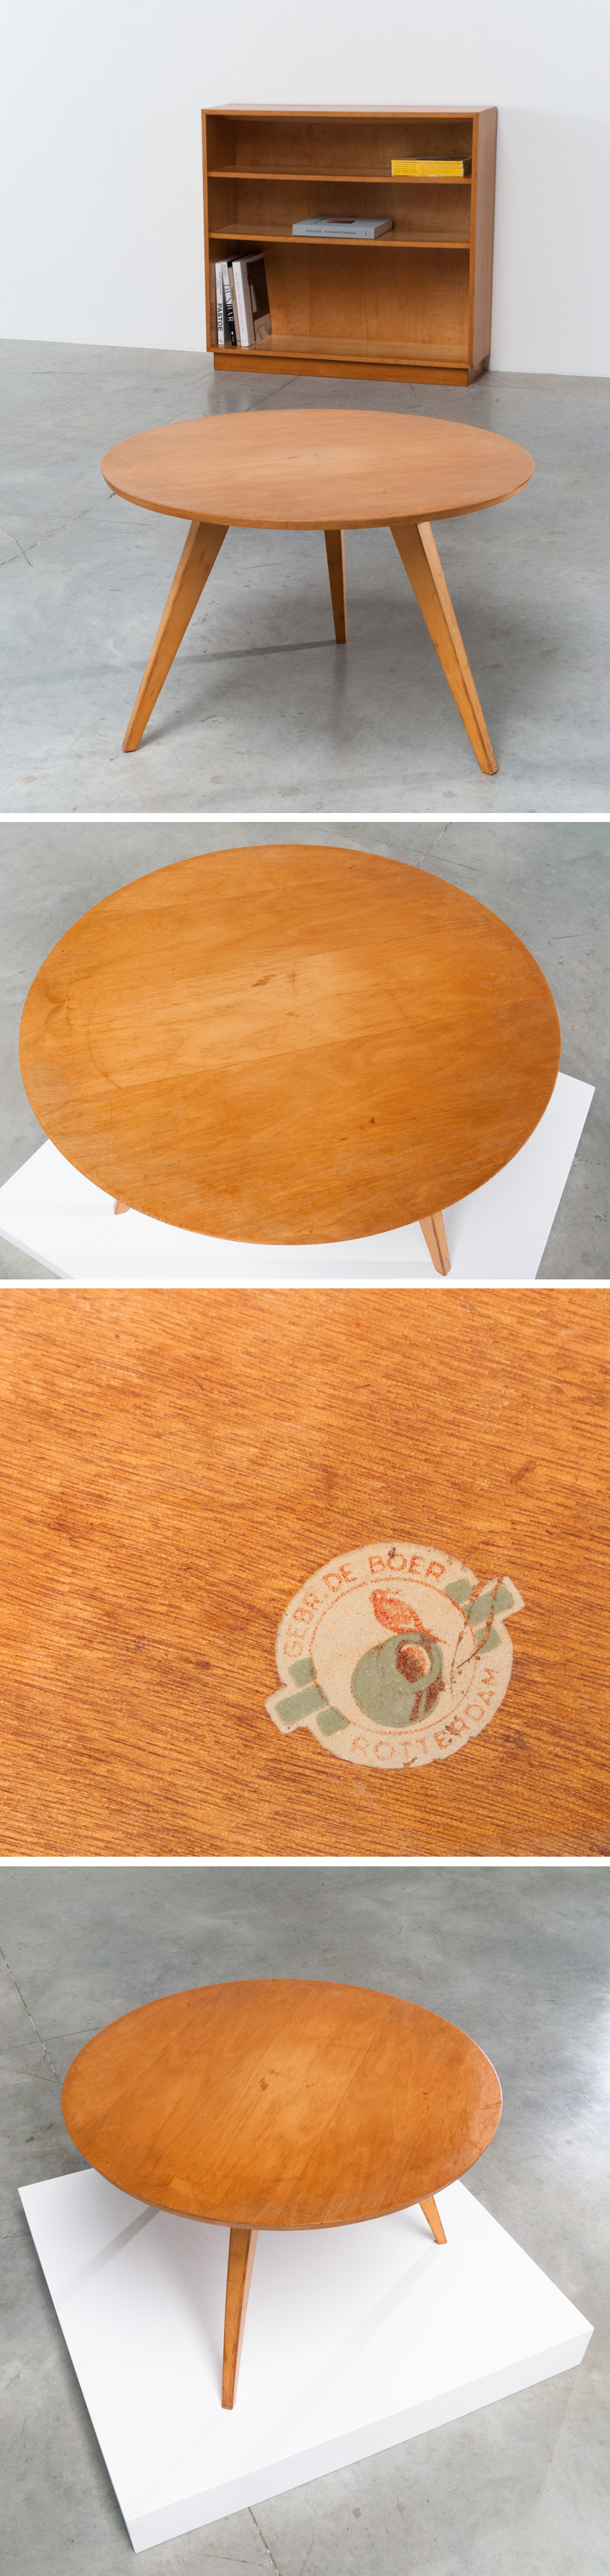 Wooden Coffee Table De Boer Rotterdam Large